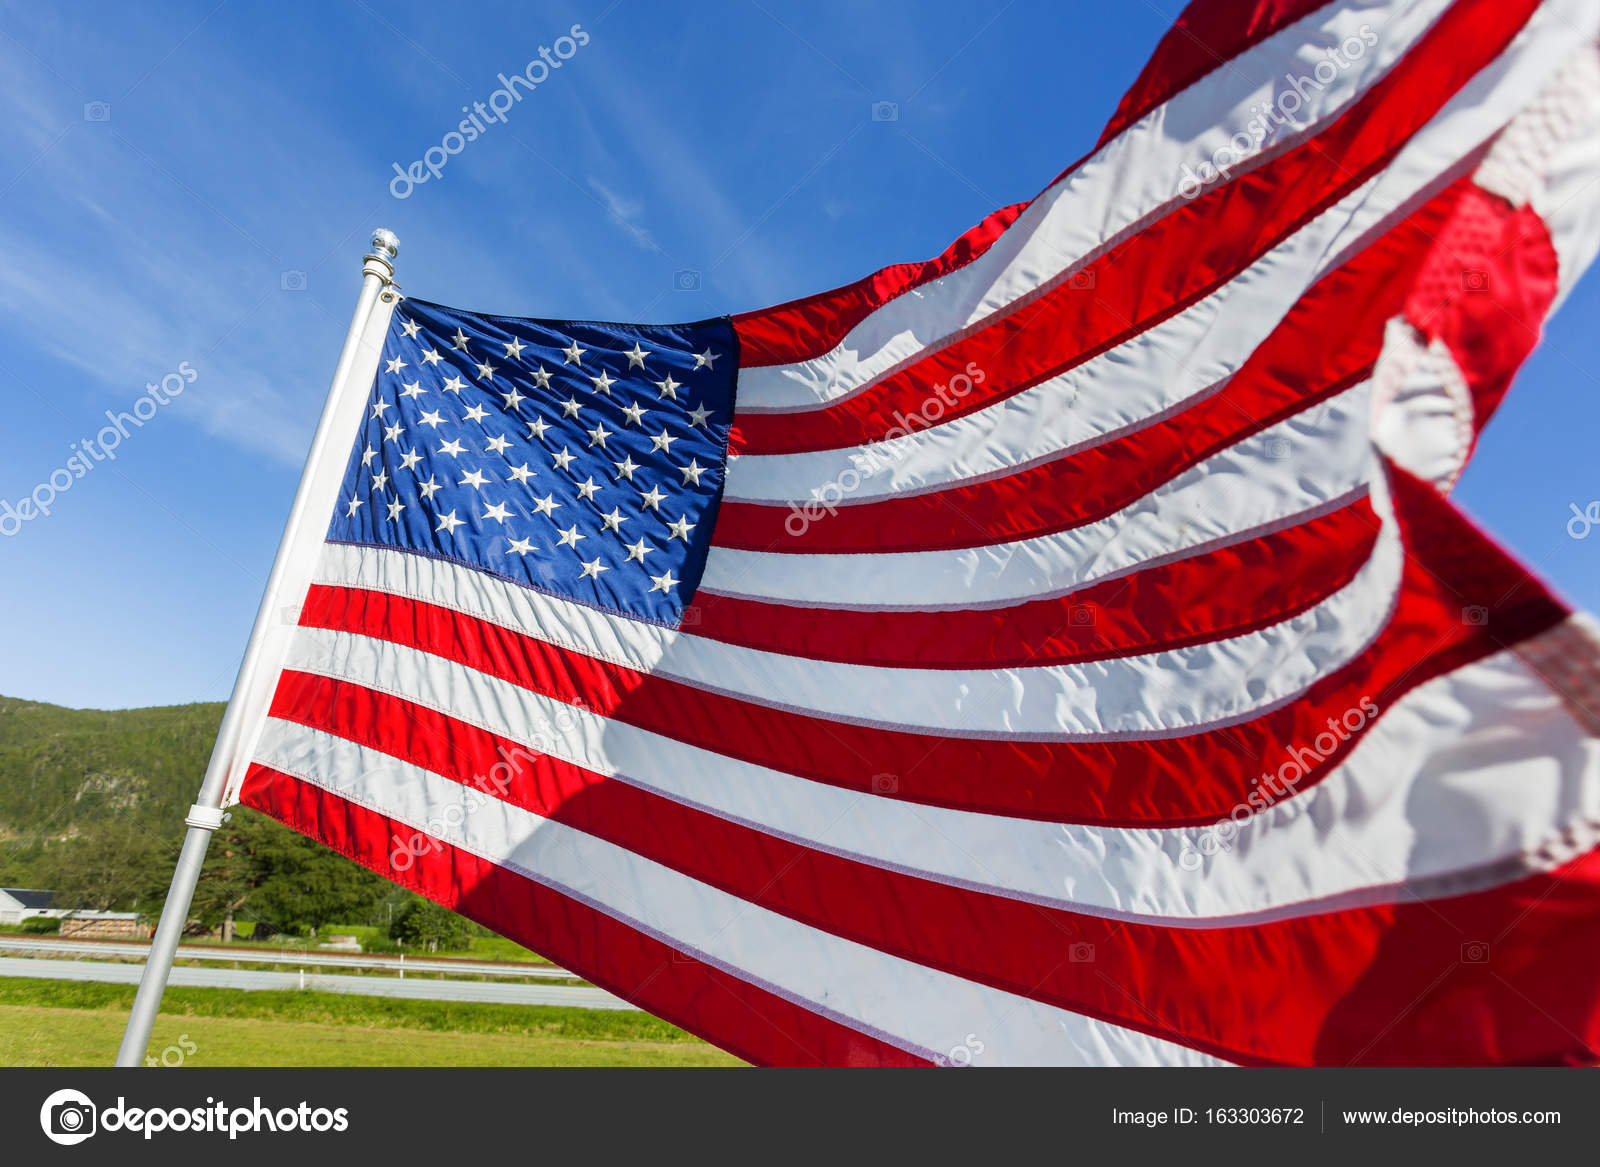 flag of the united states of america american flag or the stars and